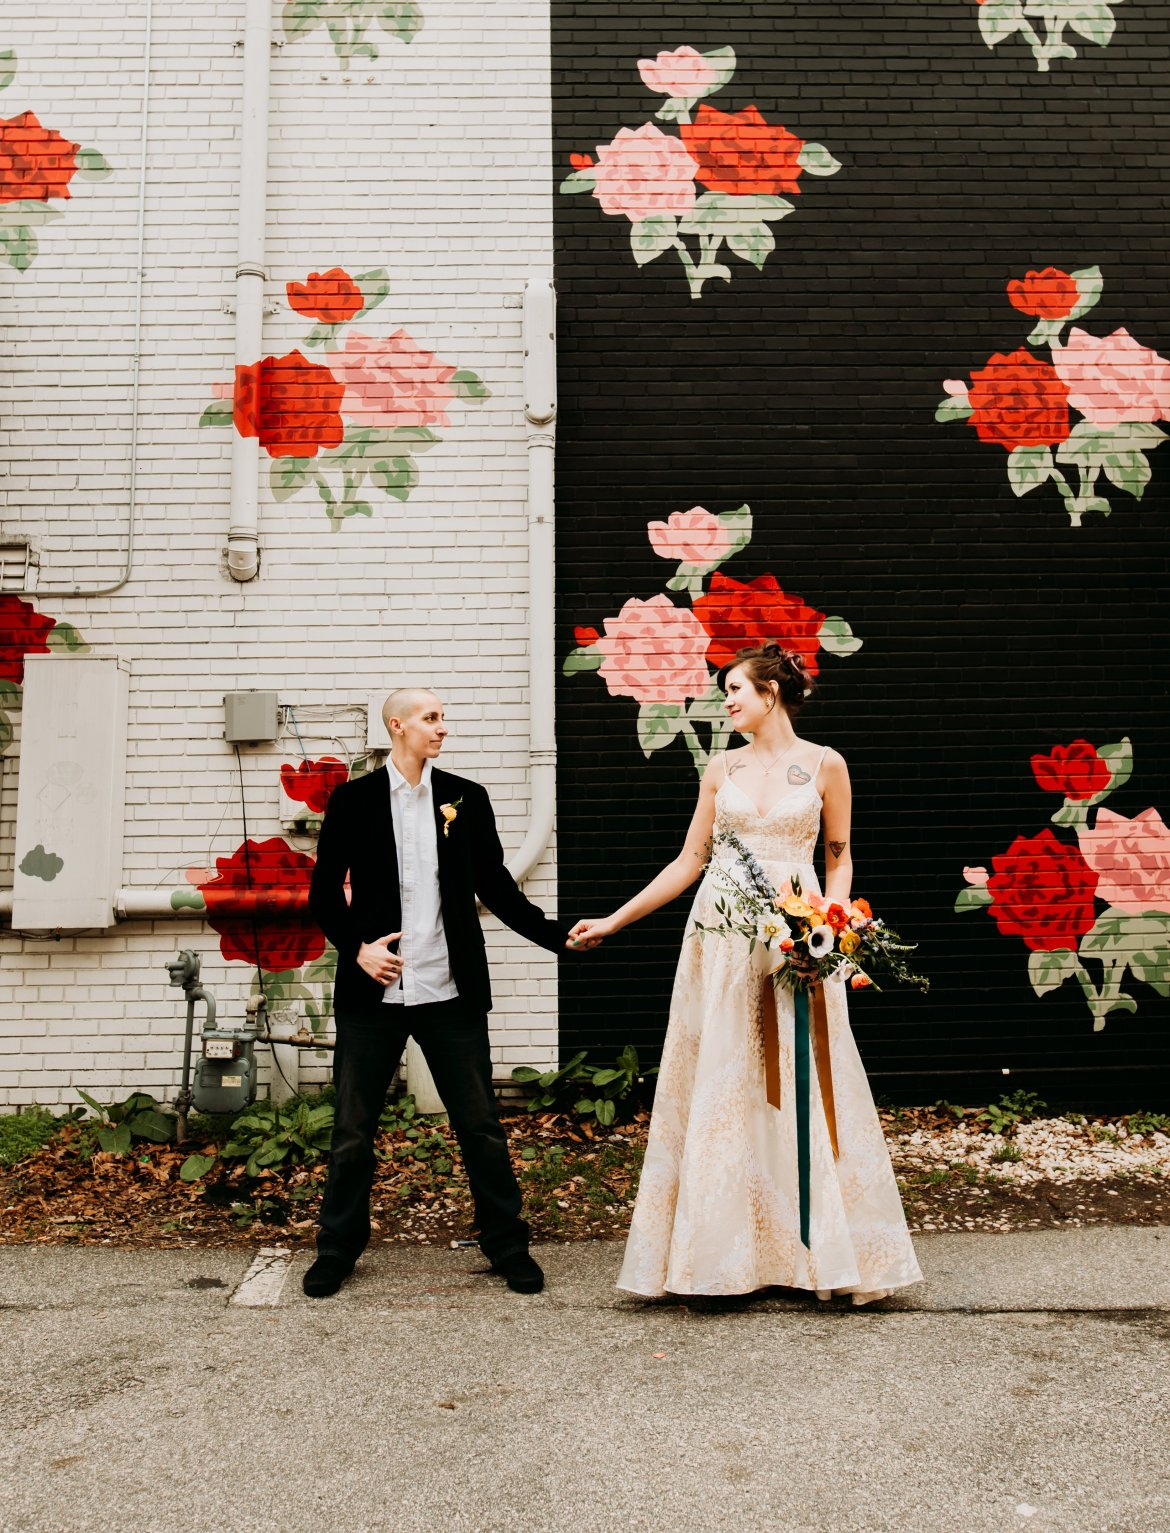 Ep 308: Equally Wed with Kirsten Palladino | The Bridechilla Podcast | Photo by Morgan Caddell Photography, Floral Design by Folie à Deux Events | HMUA by Wedded Kiss | Gown via Gilded Bridal